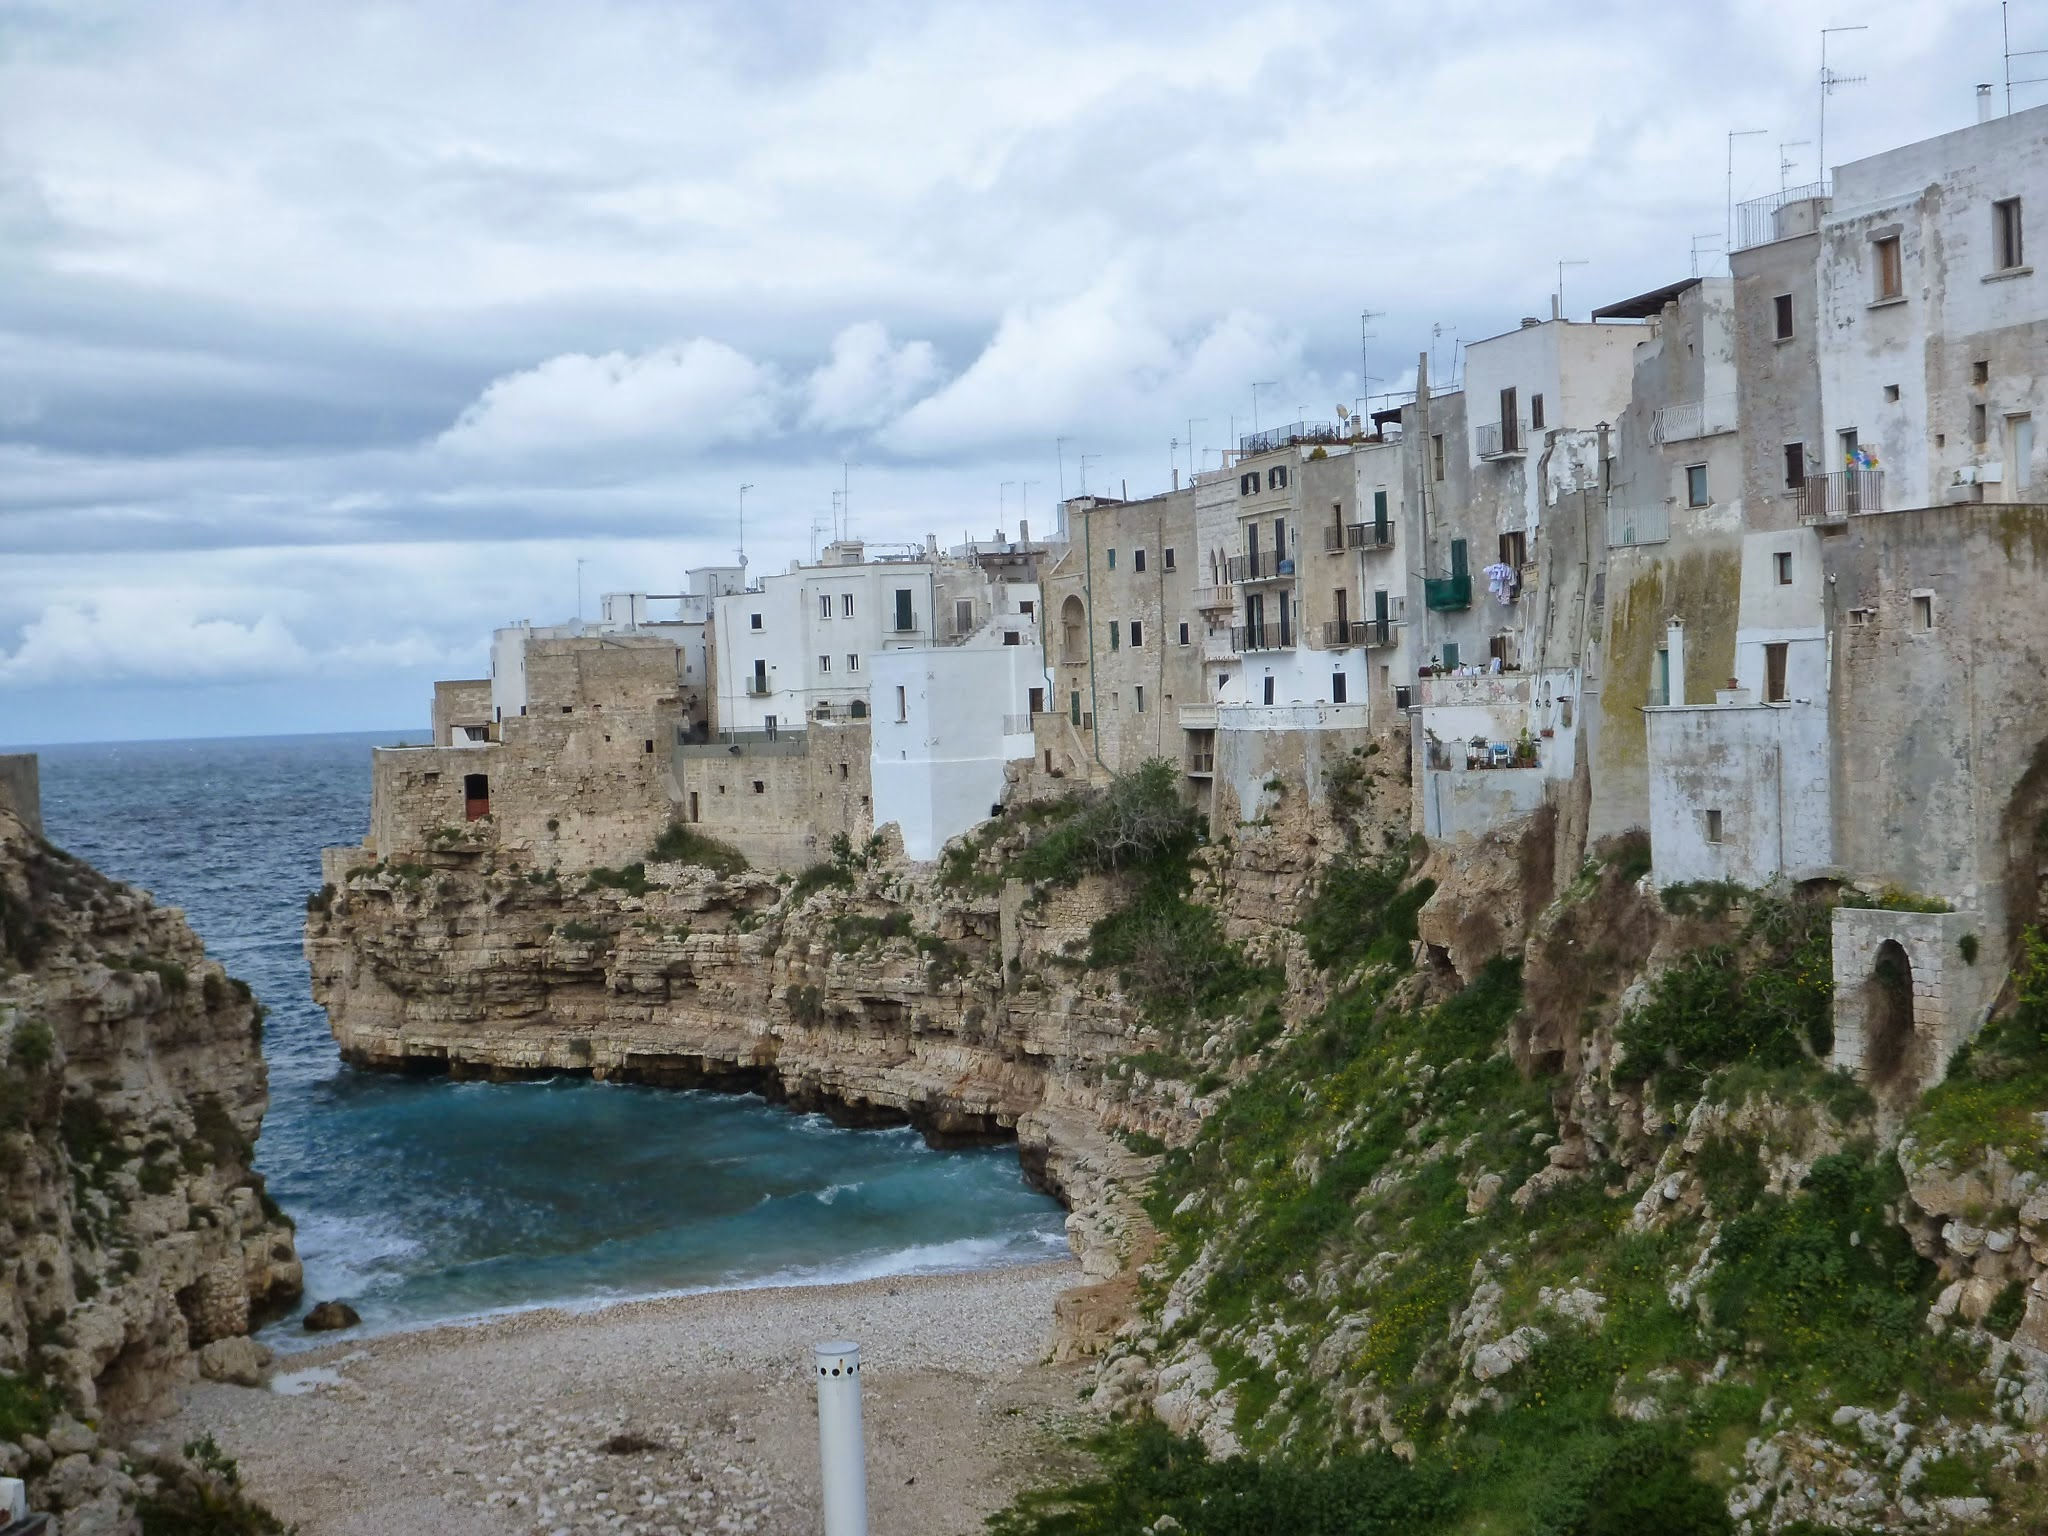 Stunning views of the Adriatic Sea await in Apulia